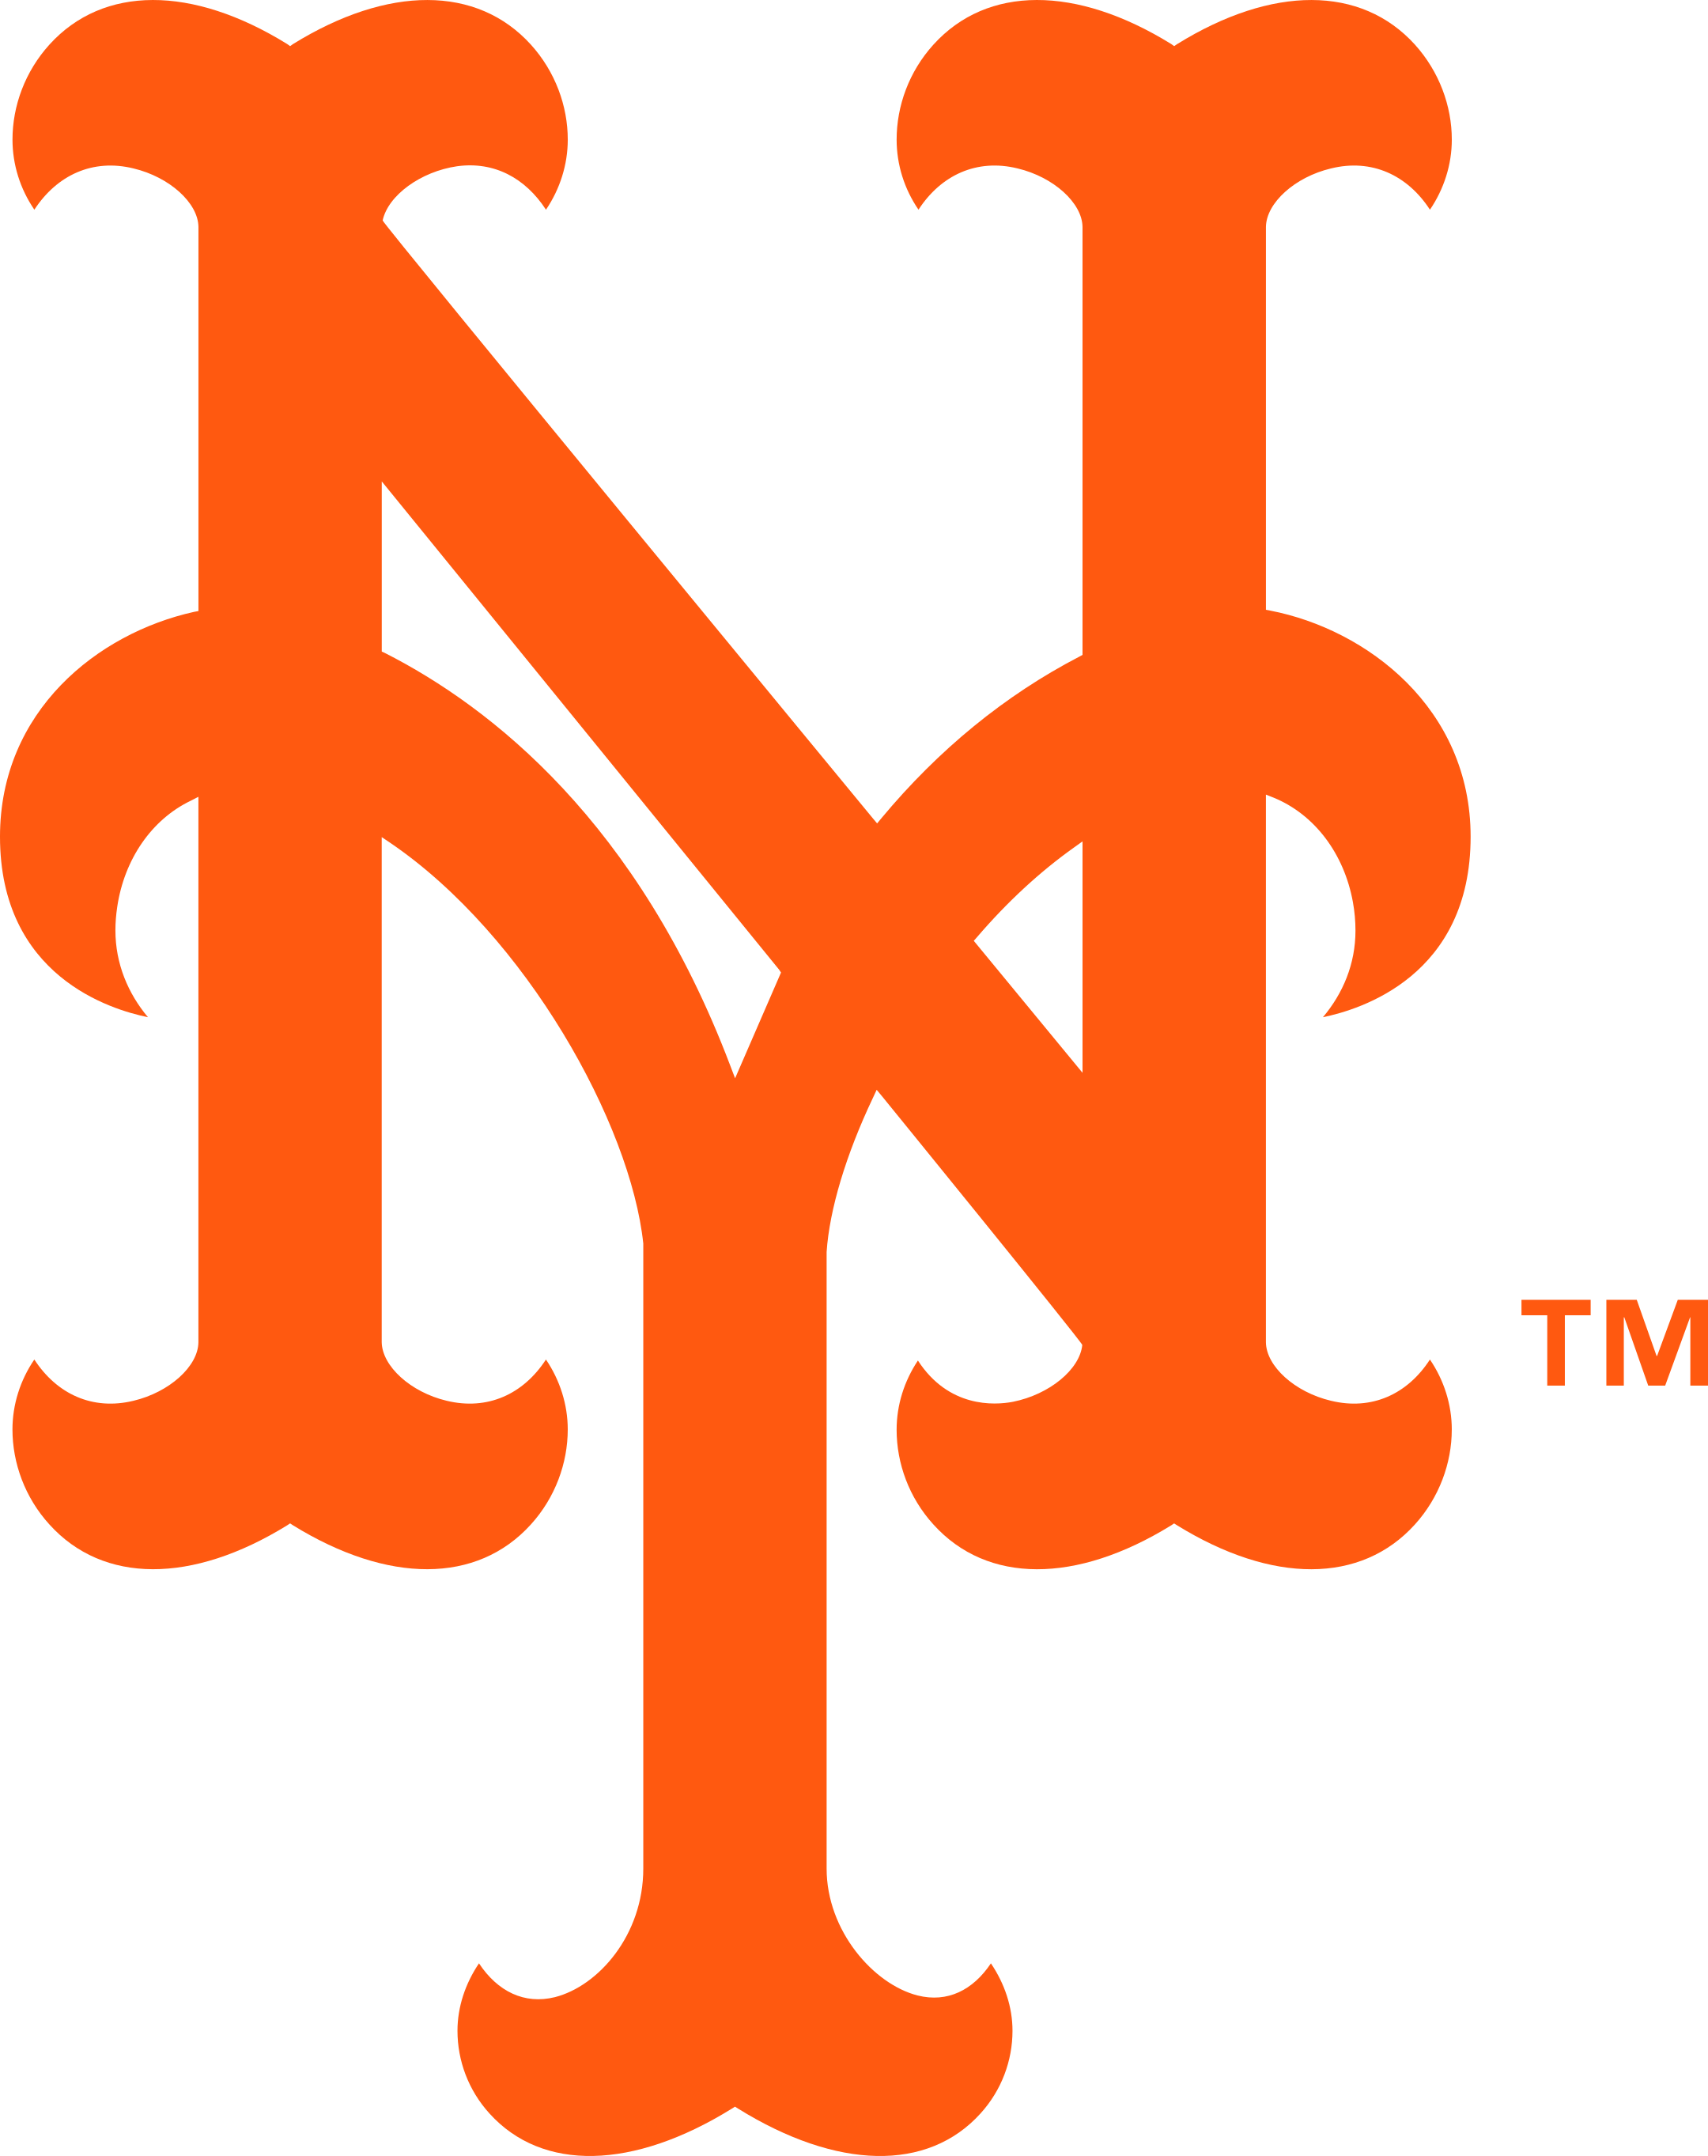 new york mets logo 1 - New York Mets Logo